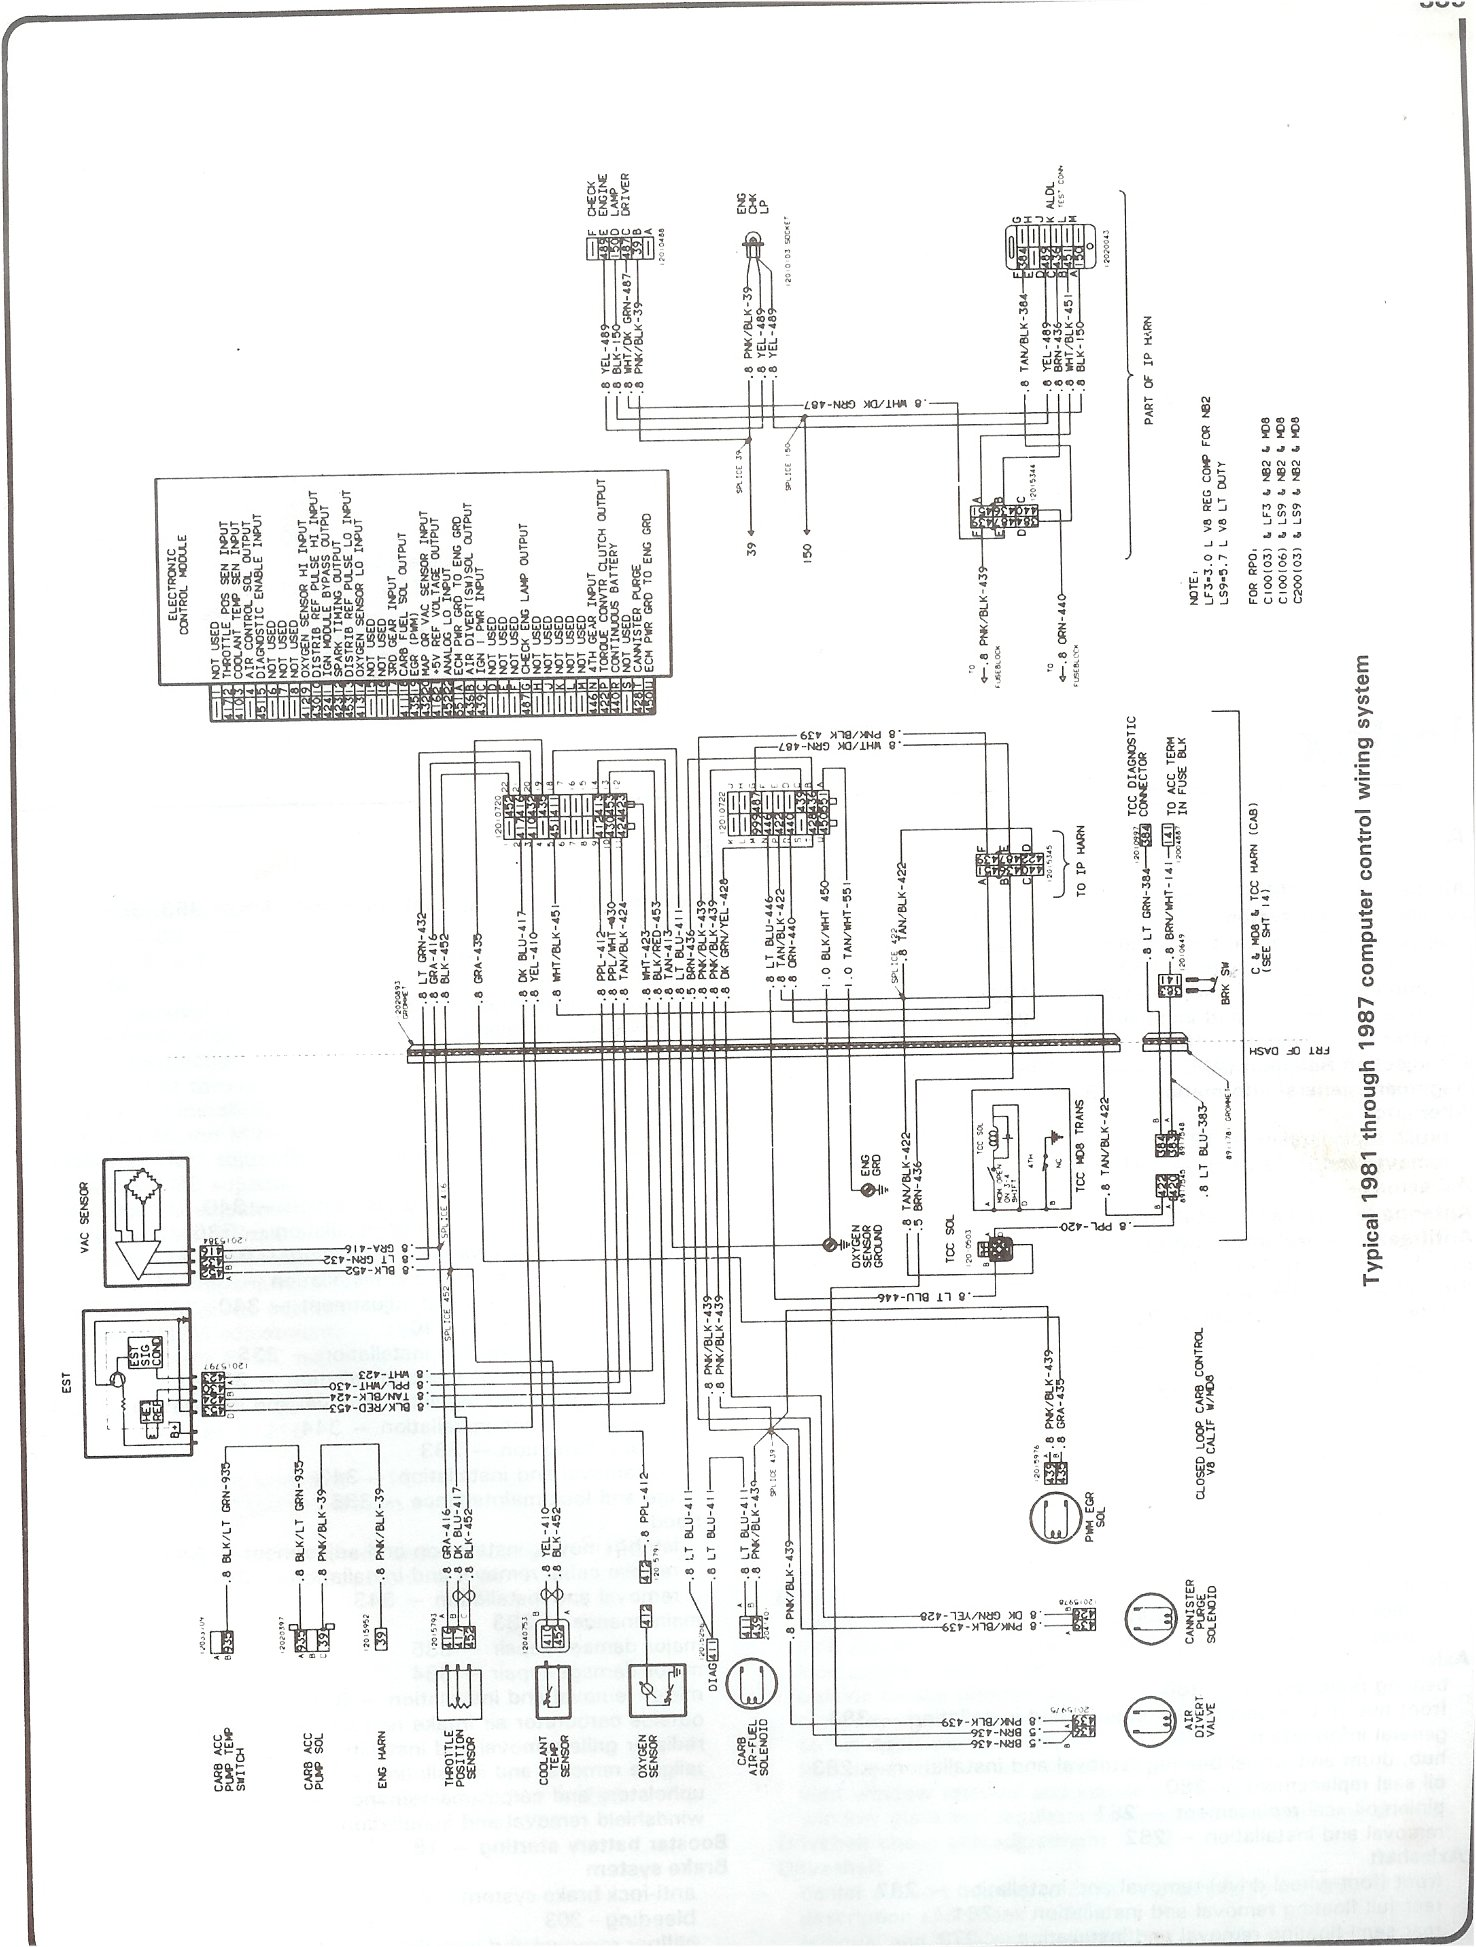 hight resolution of 74 nova wiring harness diagram schematic wiring library 1979 nova wiring diagram 1975 chevy p30 wiring